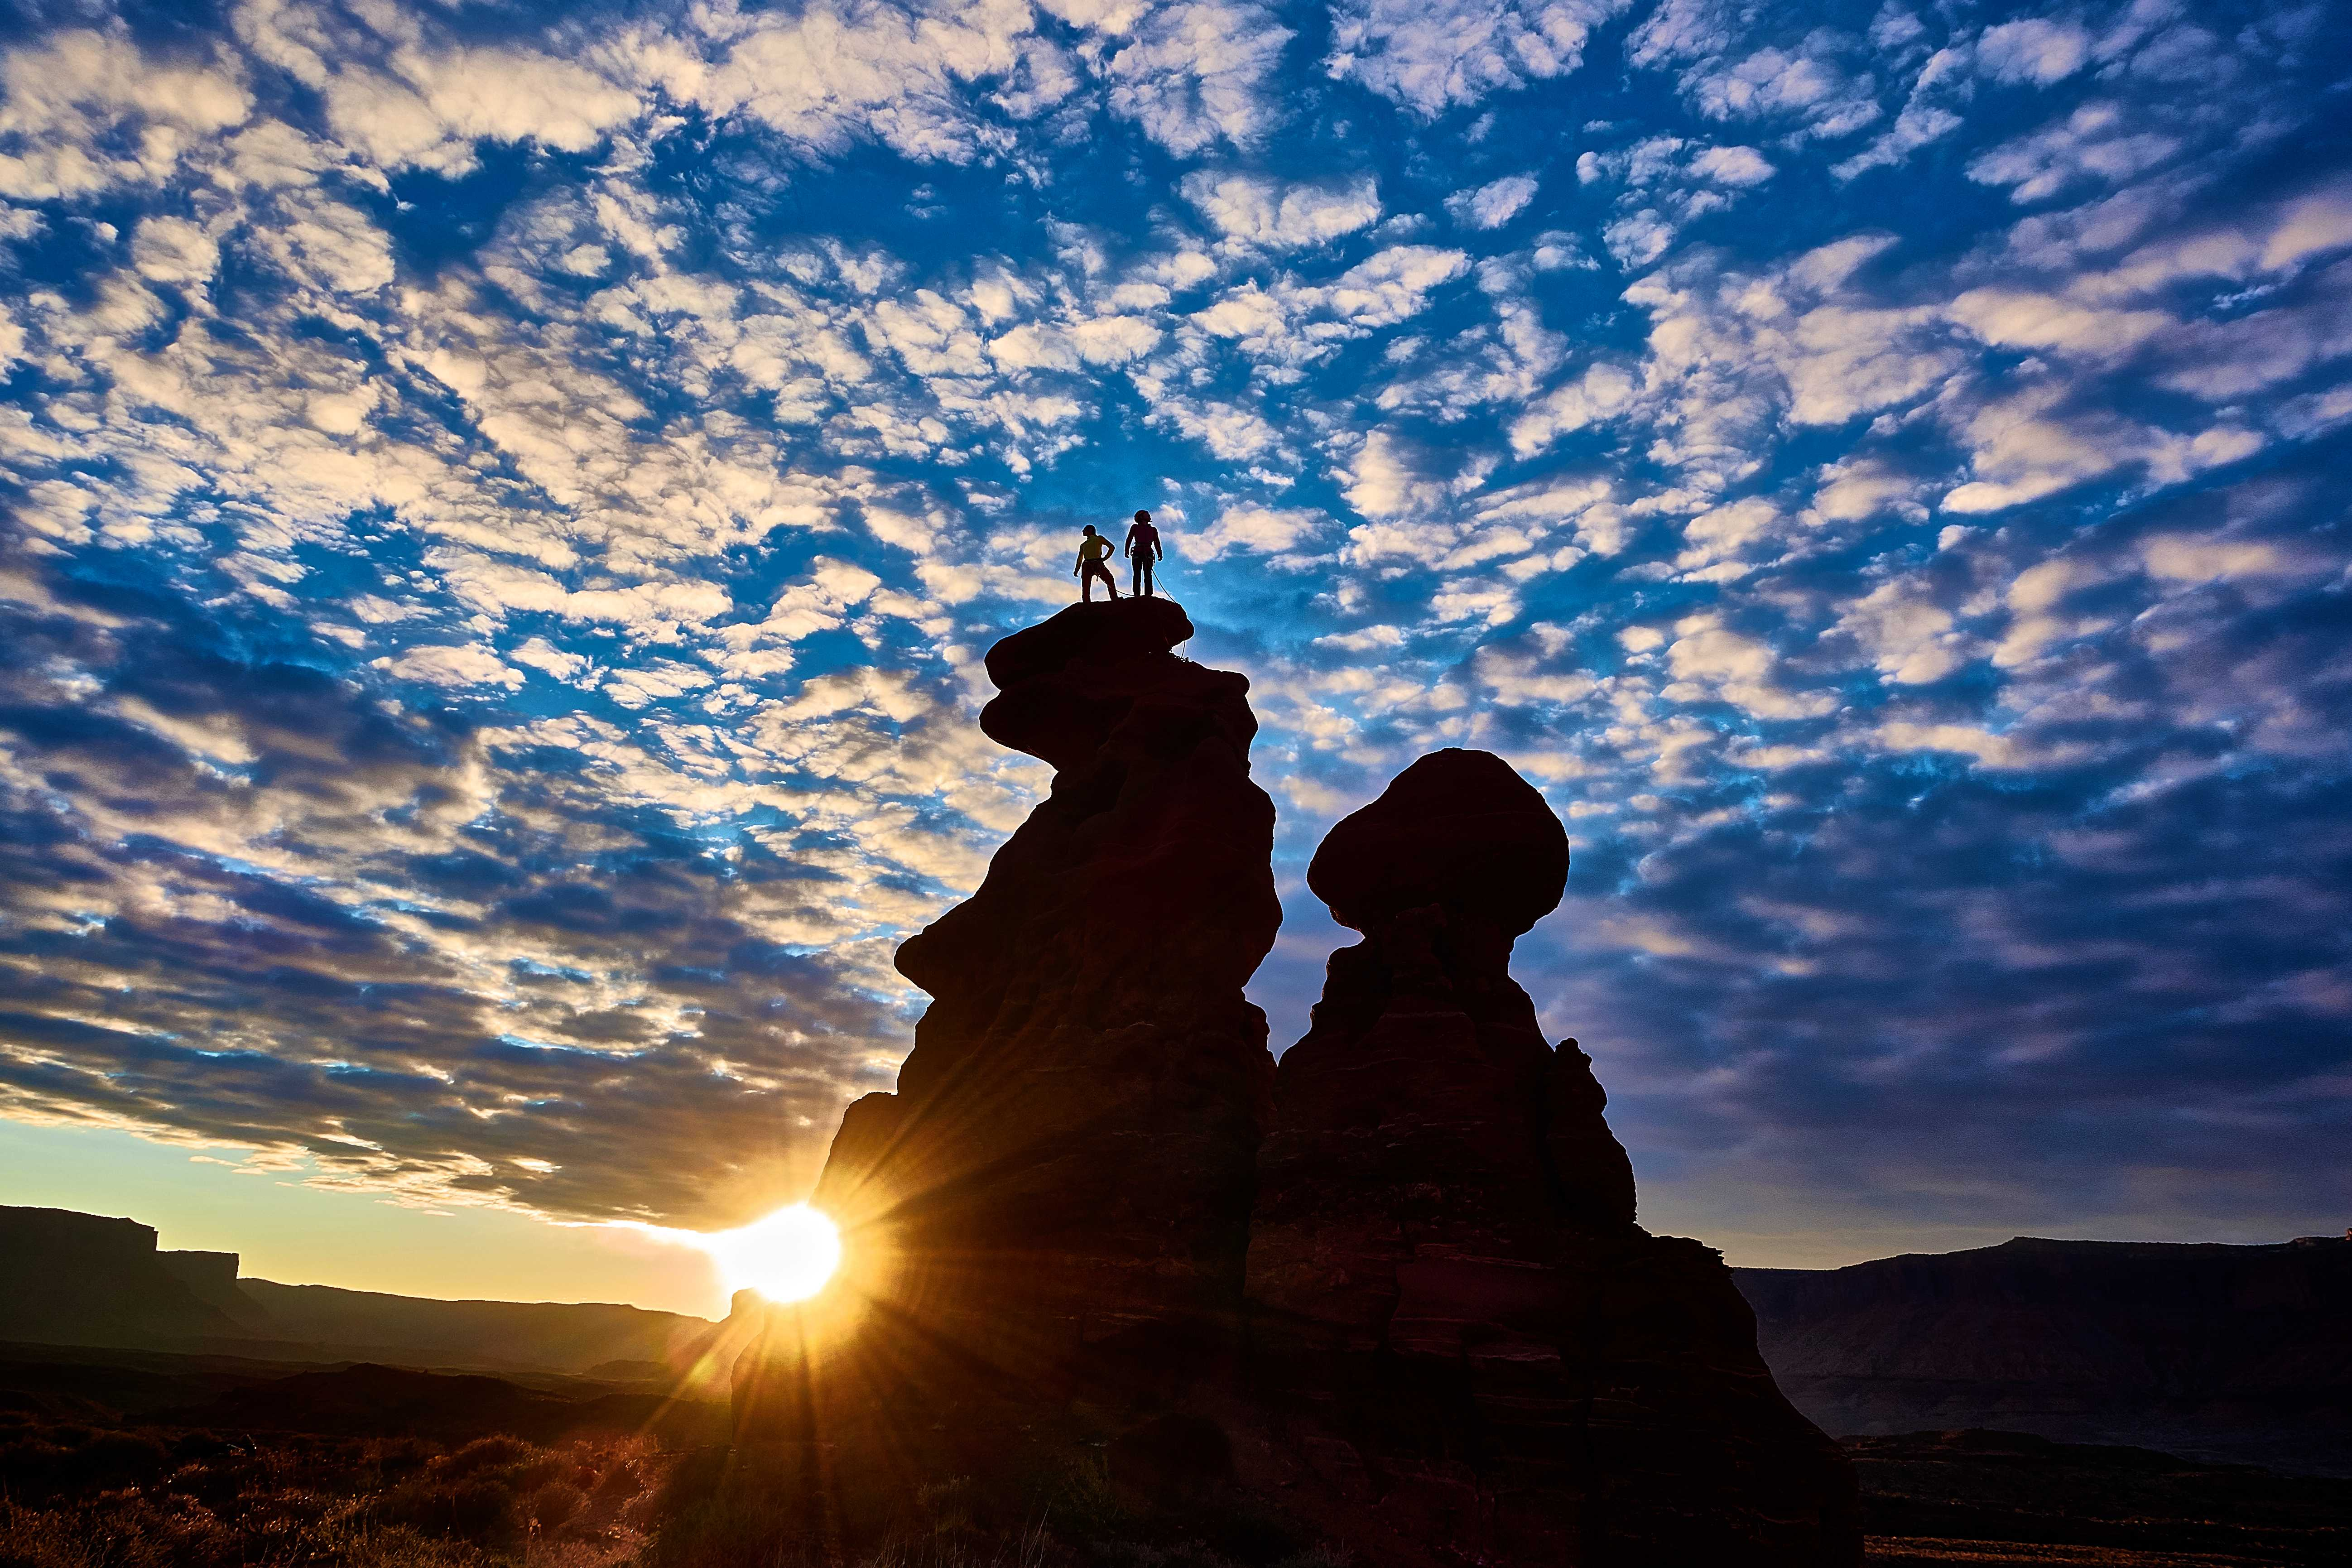 Two Rock Climber at the Top Of a Boulder